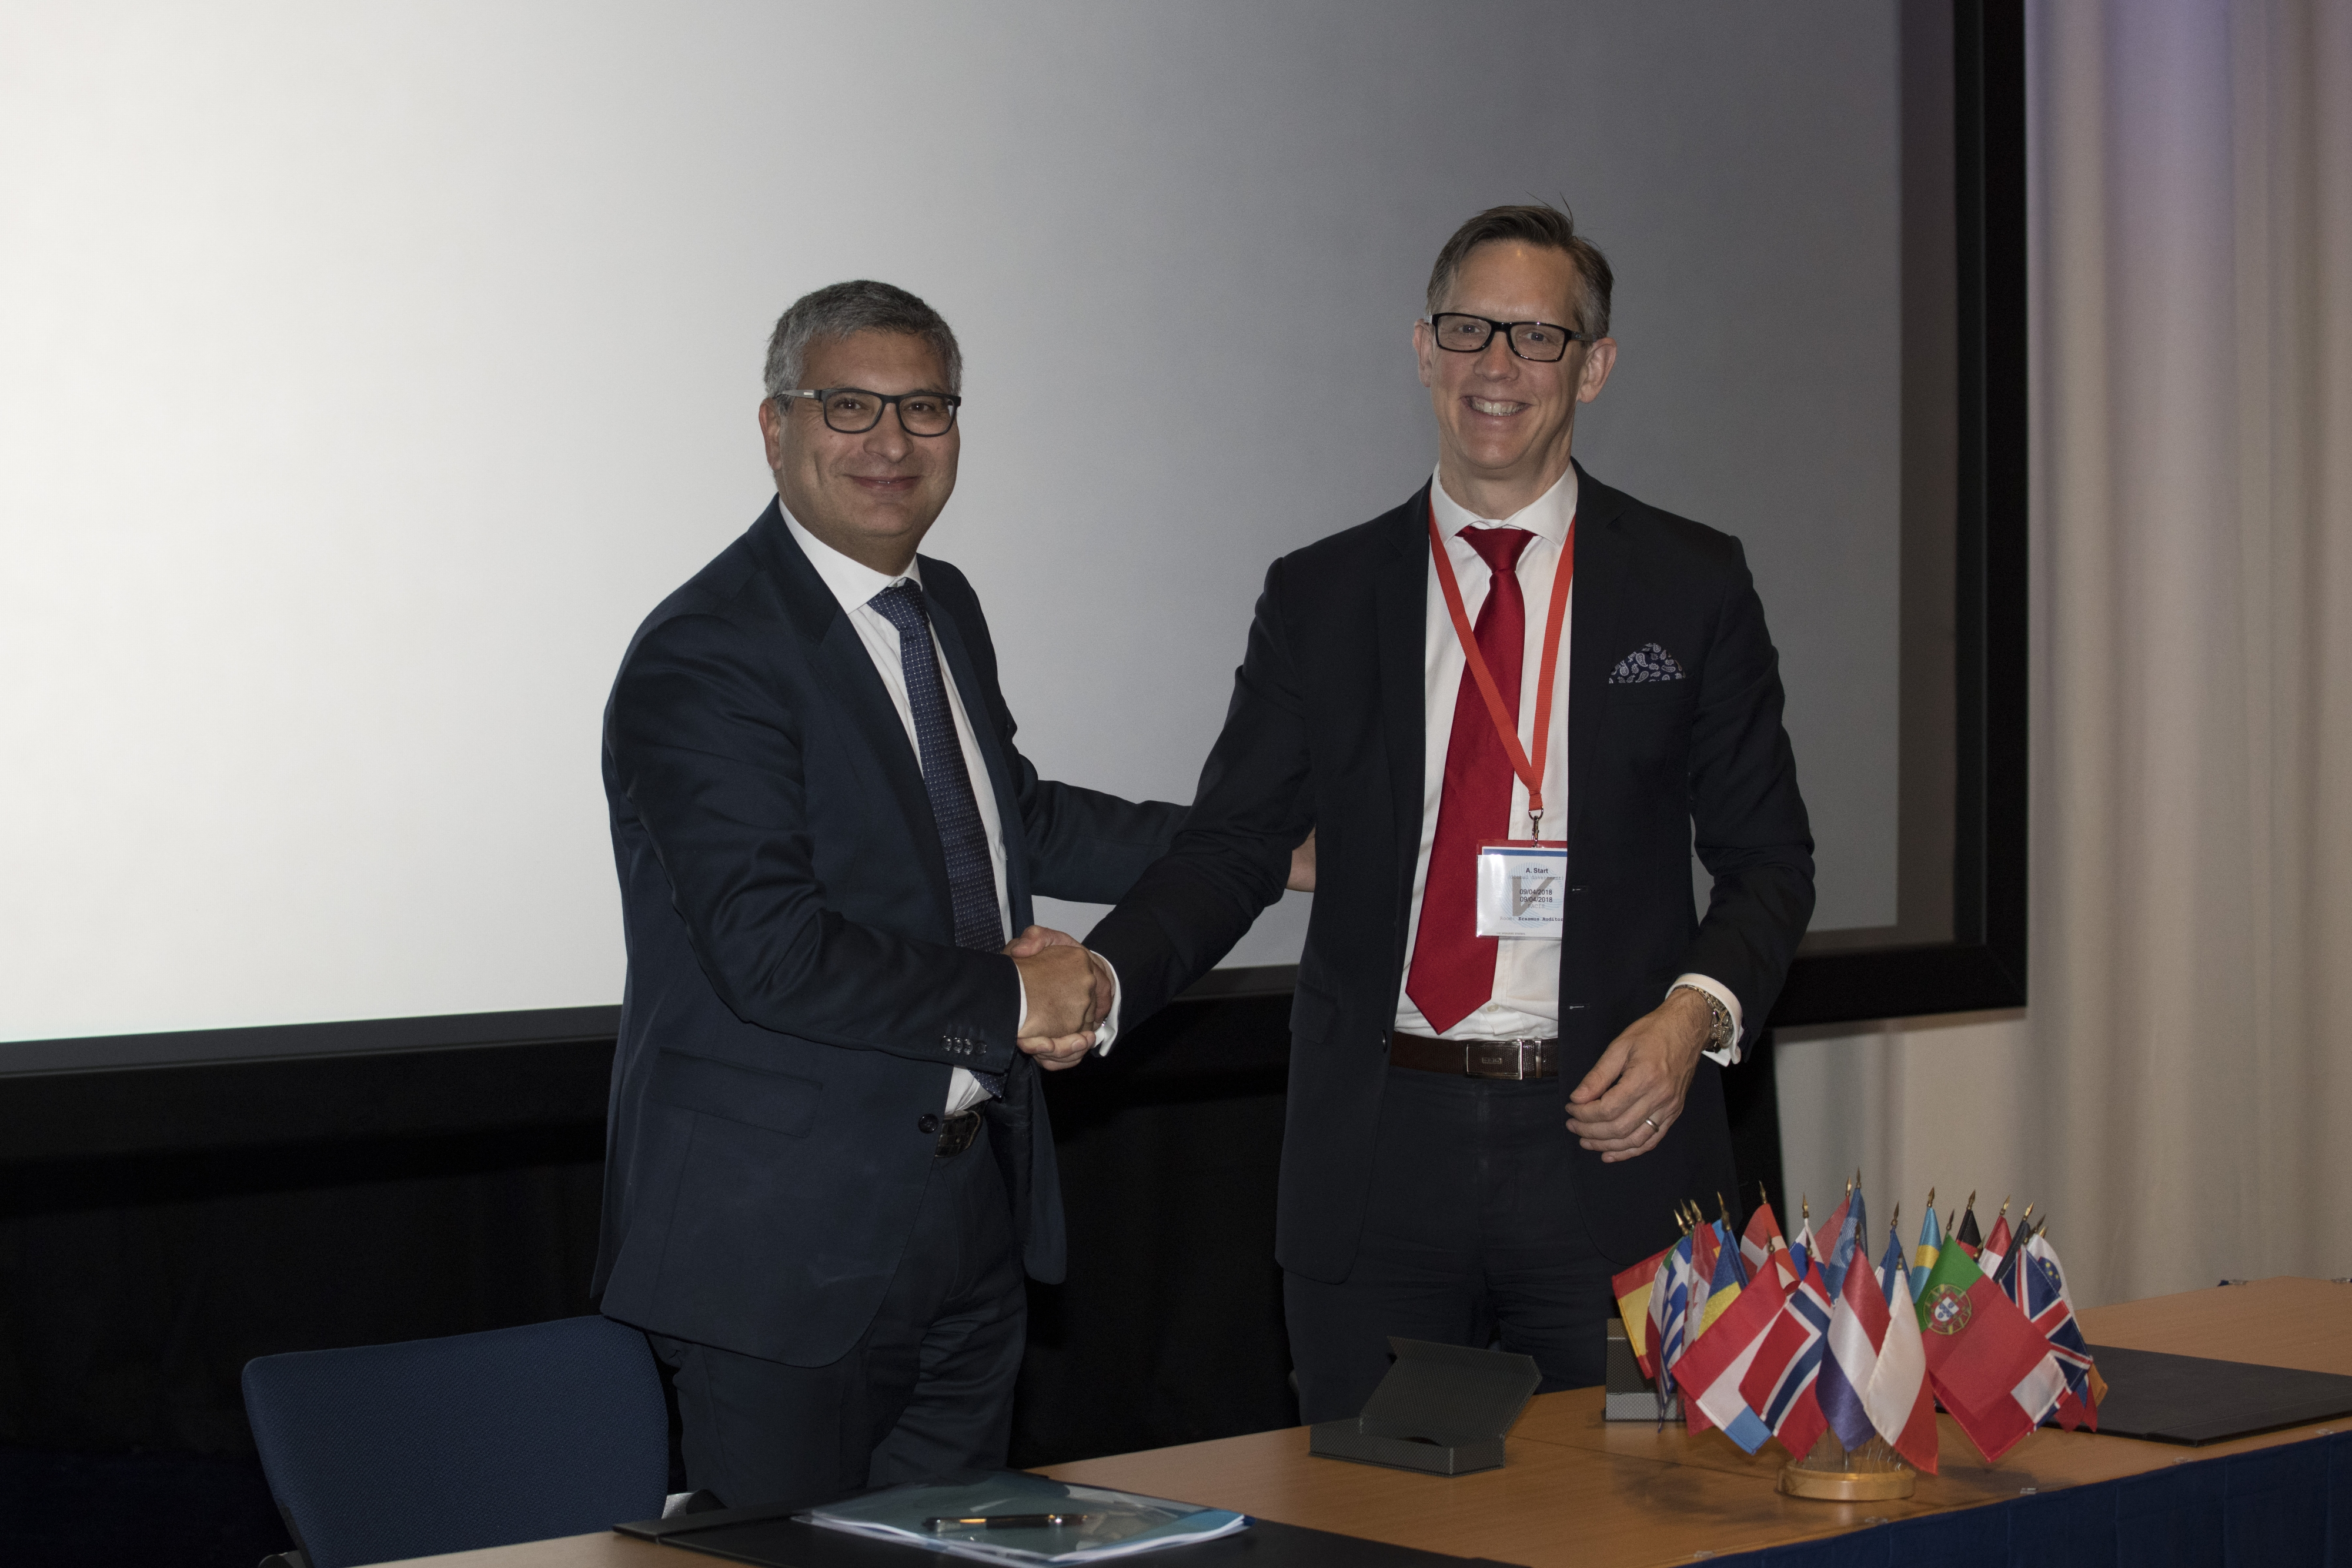 ESA's Carlo Elia and Inmarsat's Andy Start sign the Govsatcom Precursor Pacis-6 contract on 9 April 2018 at ESA ESTEC. Pacis-6 will see the creation of a new open platform for pooling and sharing of commercial secure satcom services. Credit: ESA-G. Porter